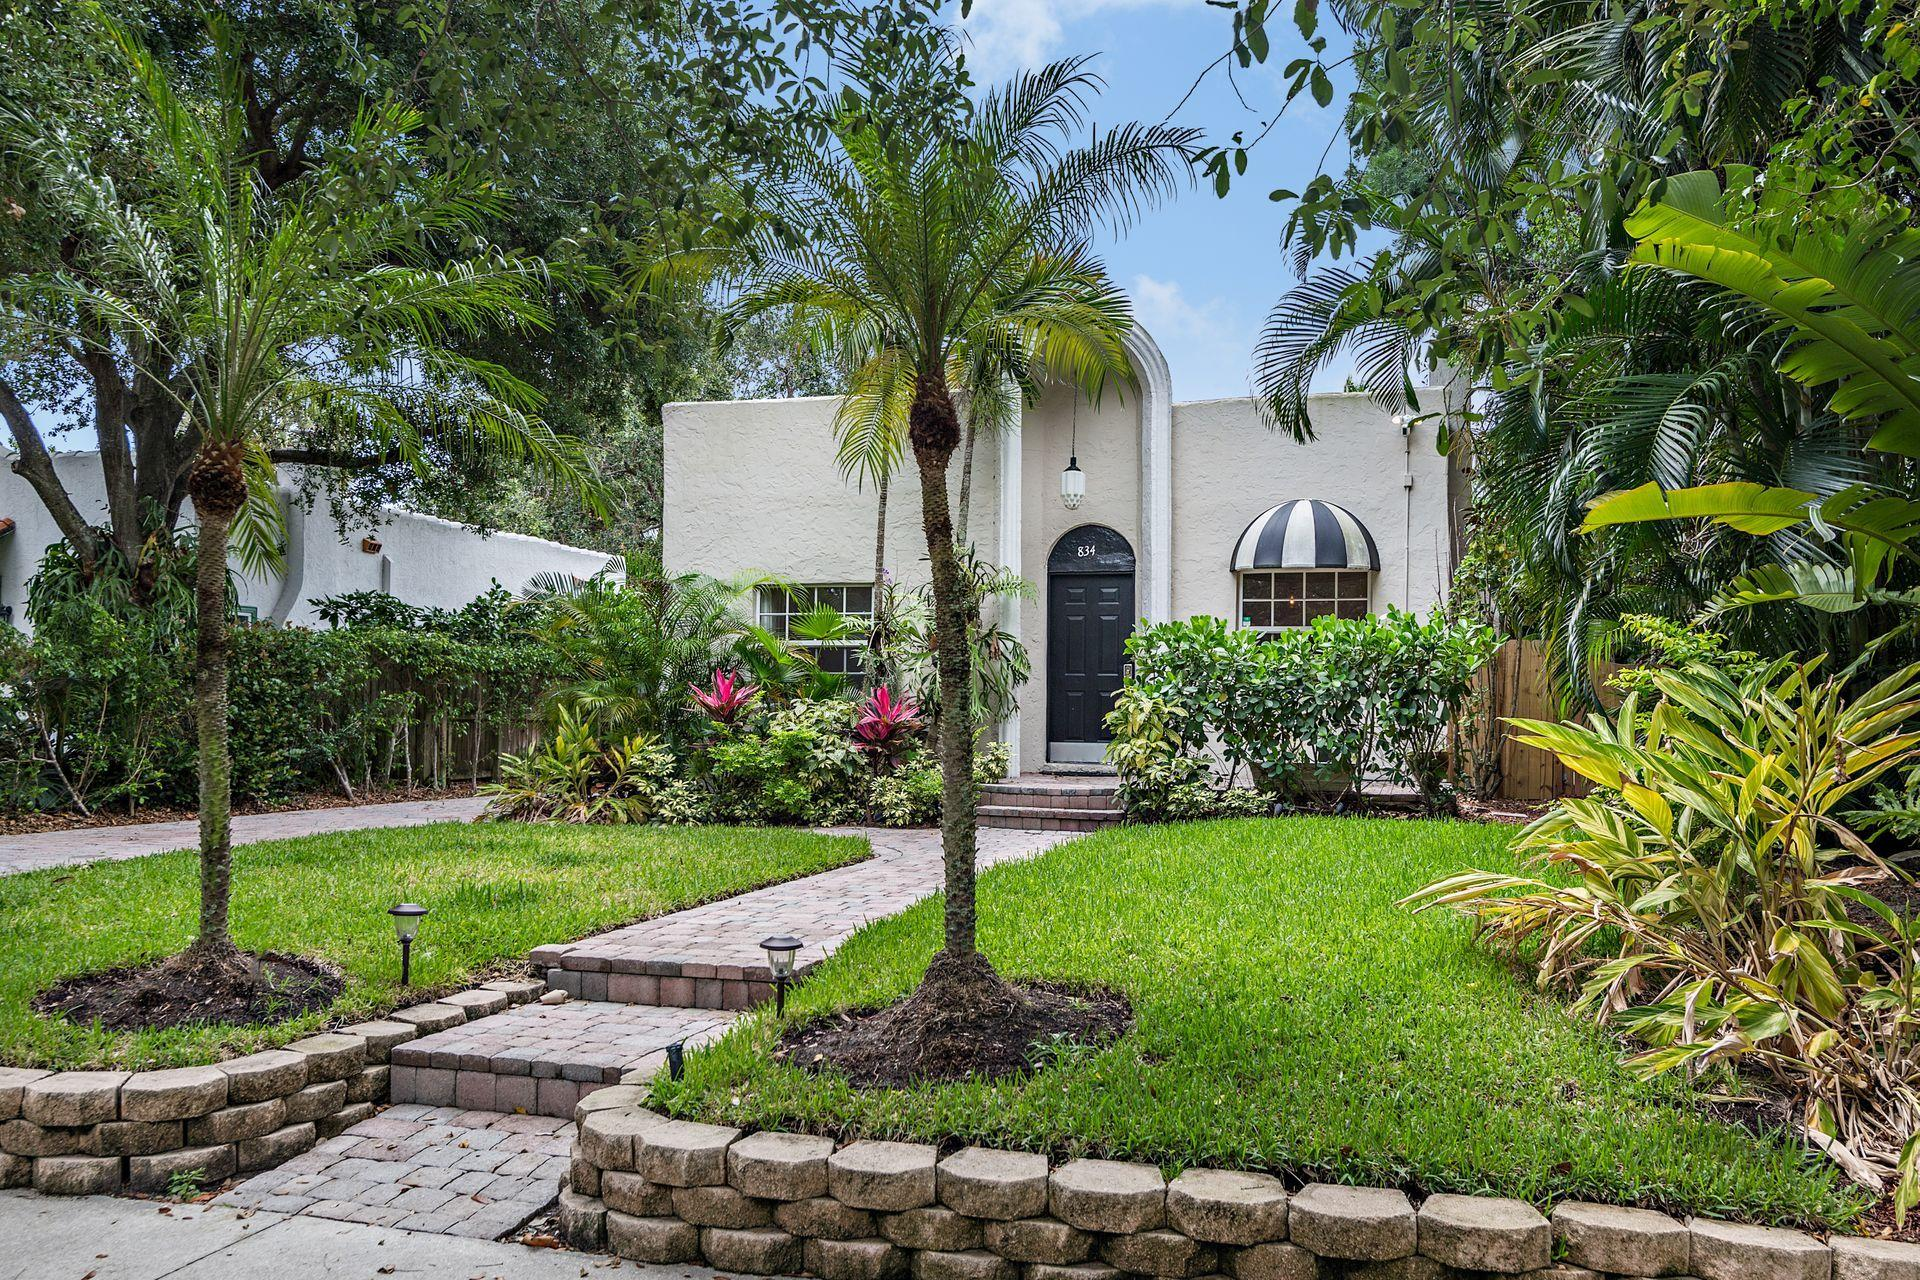 834 Upland Road - 33401 - FL - West Palm Beach